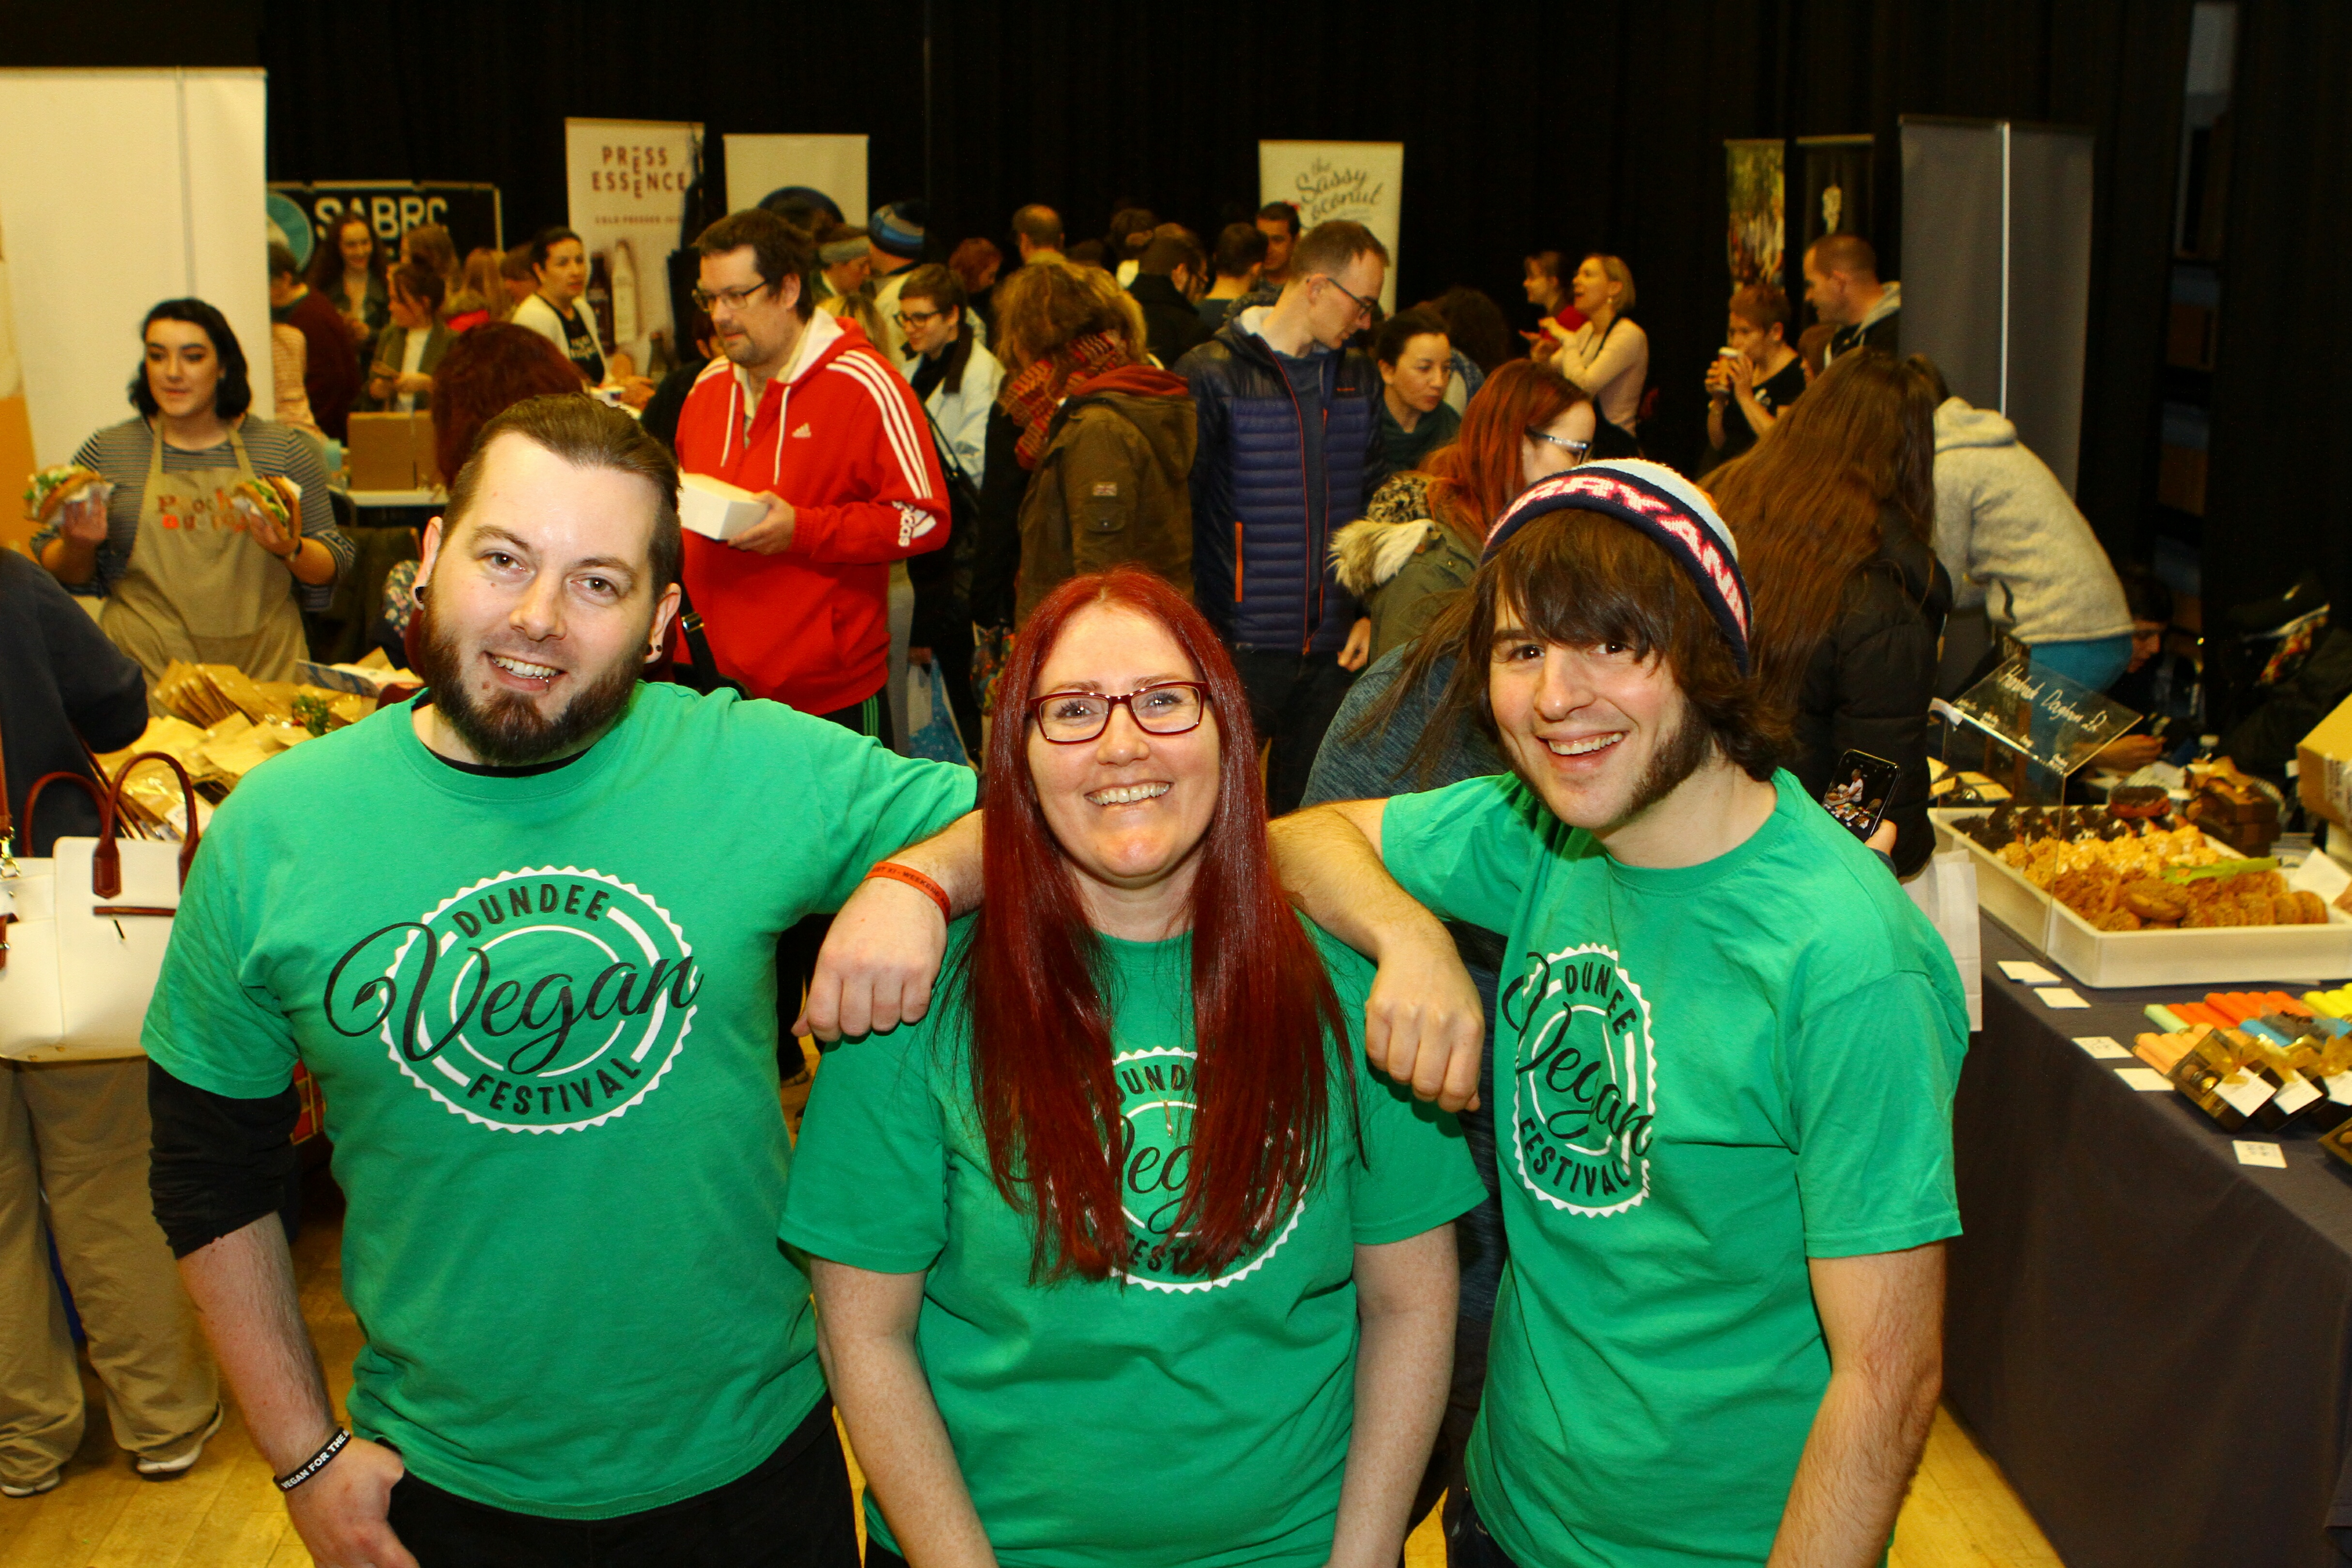 Organisers Barry Mackie-Conlon, Louise Cormack and Jamie Kidd, at a previous Dundee Vegan Festival.